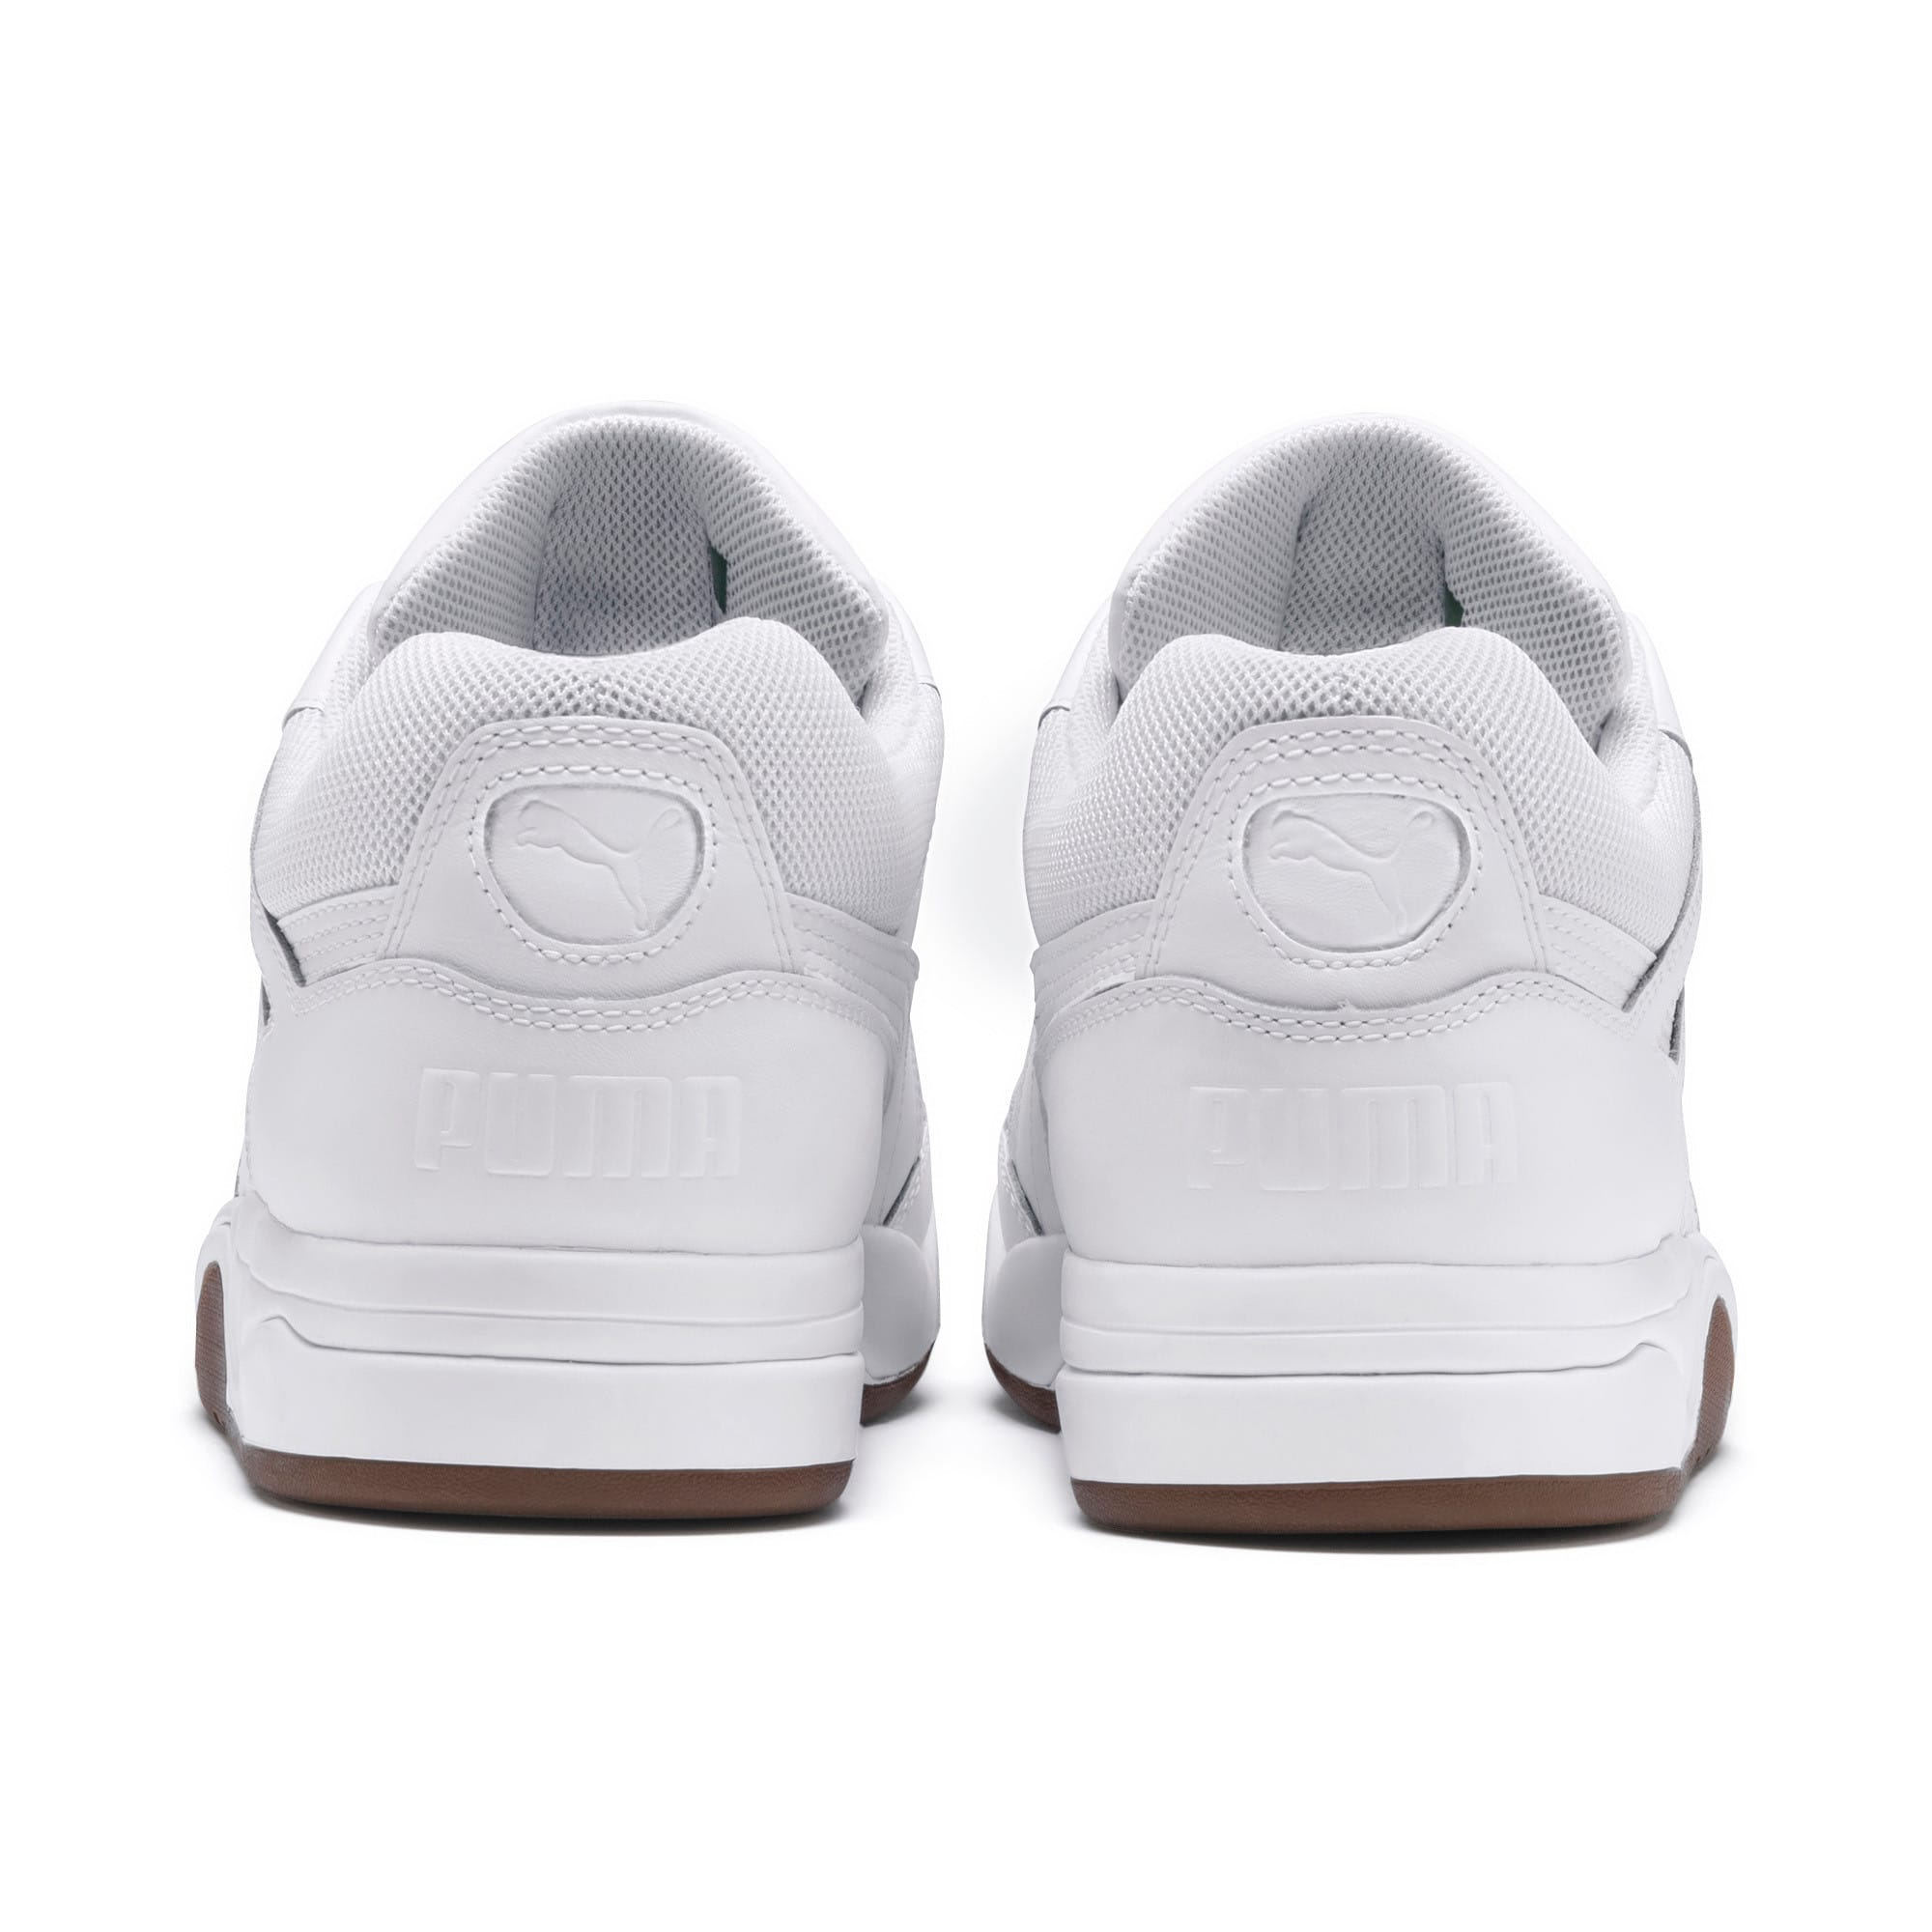 Anteprima 3 di Palace Guard Men's Basketball Trainers, Puma White-Puma White-Gum, medio